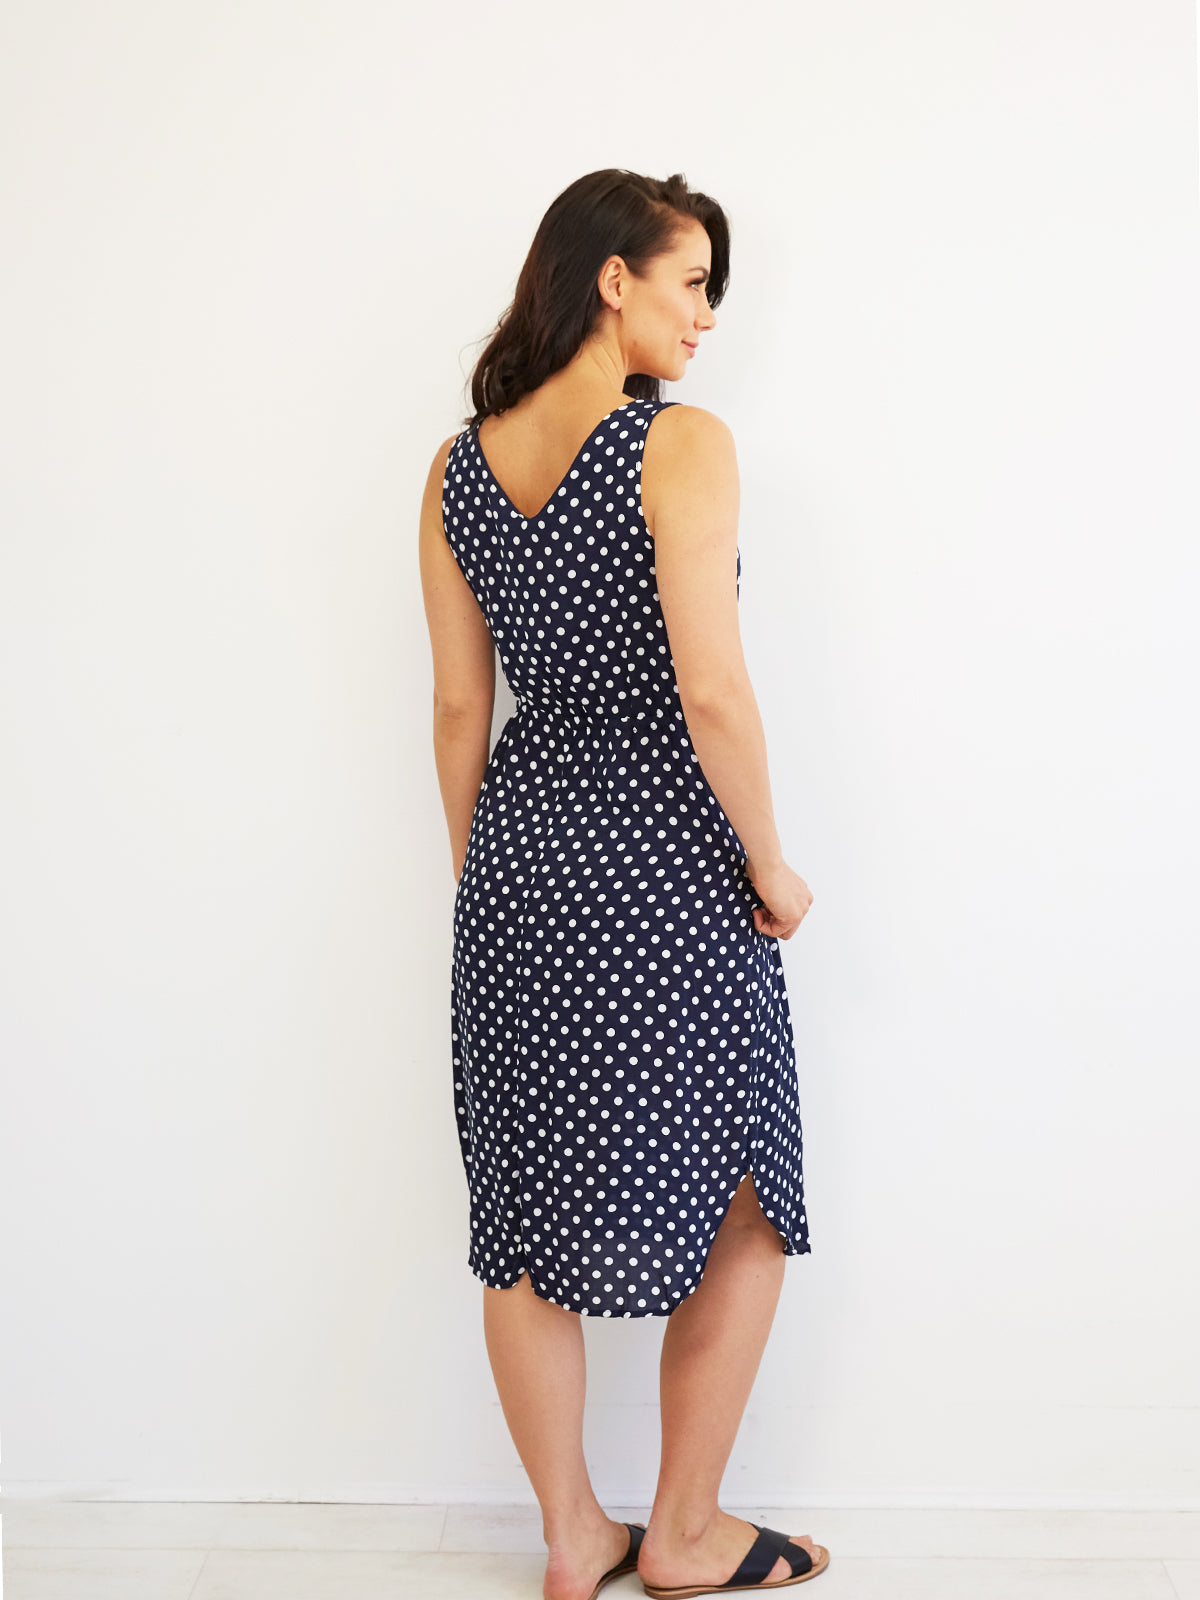 SAINT HONORE DREAMING NAVY POLKA DOT DRESS